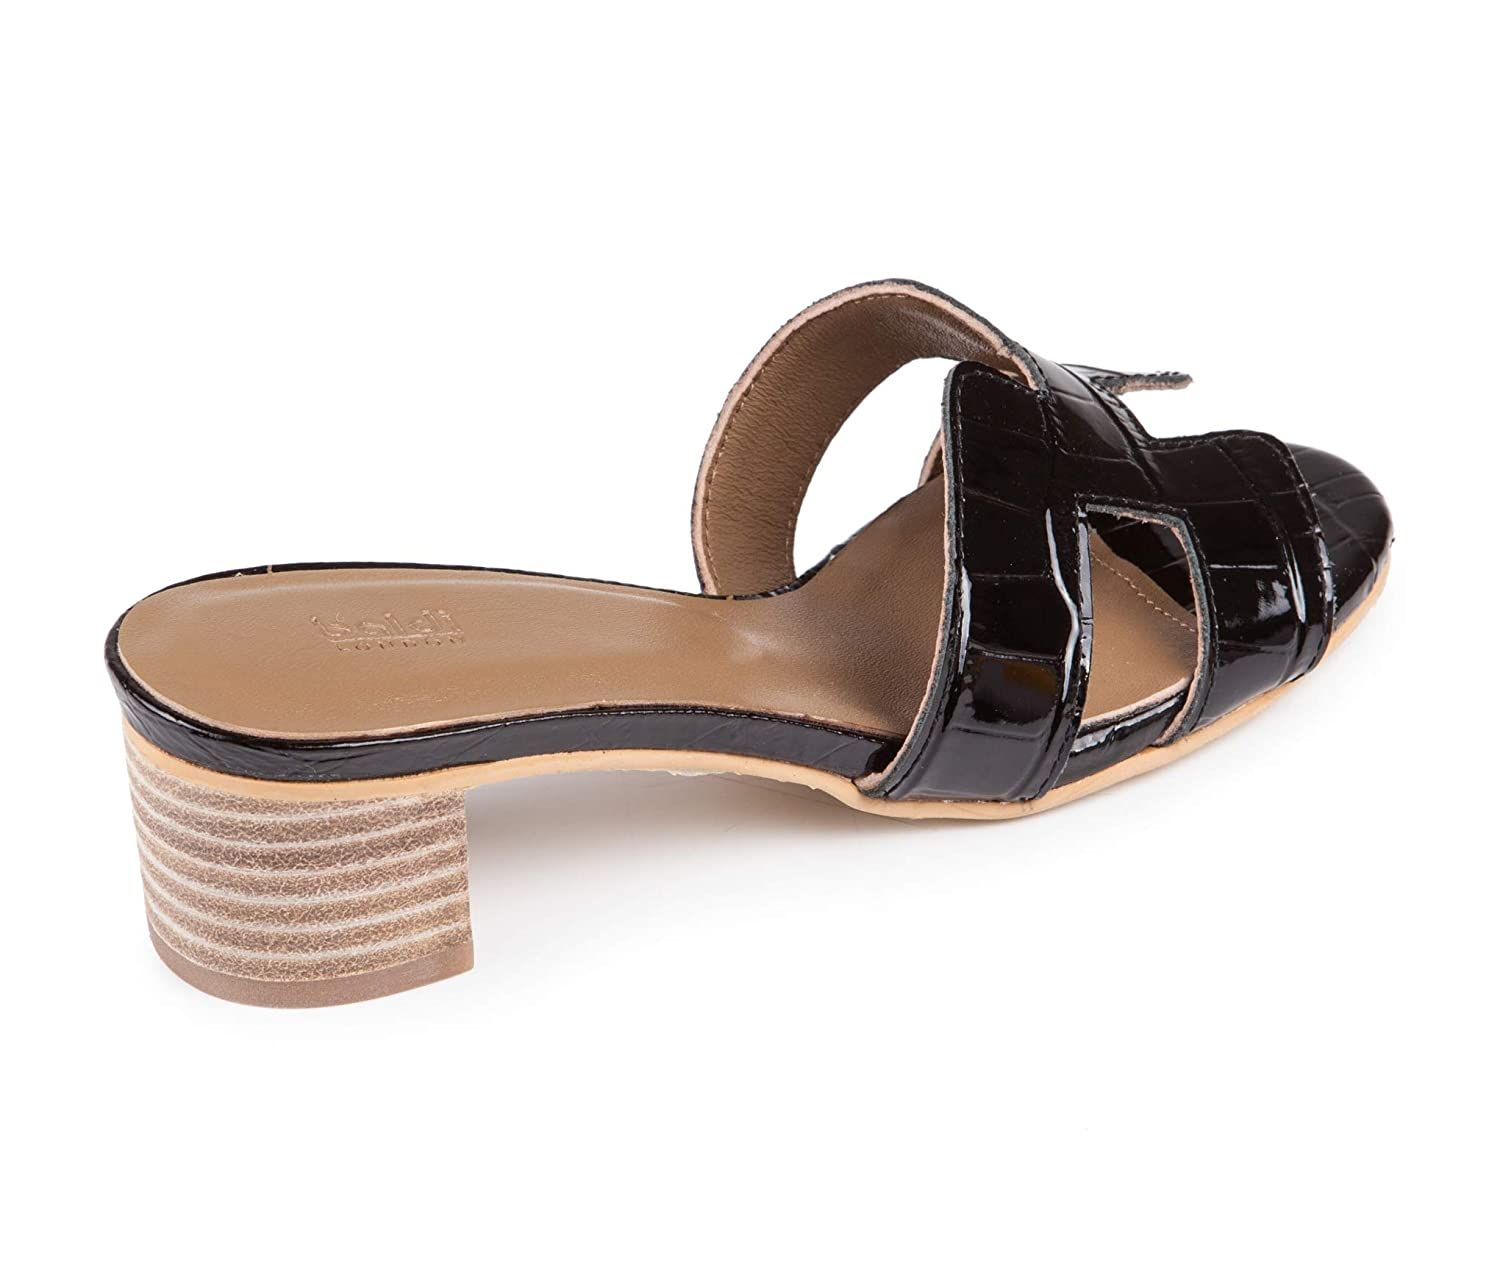 US 5 // EU 35 Baldi Womens Torquil Black Faux Leather Mid Wide Heel Ankle T Strap Open Toe Comfortable Summer Sandals Shoes